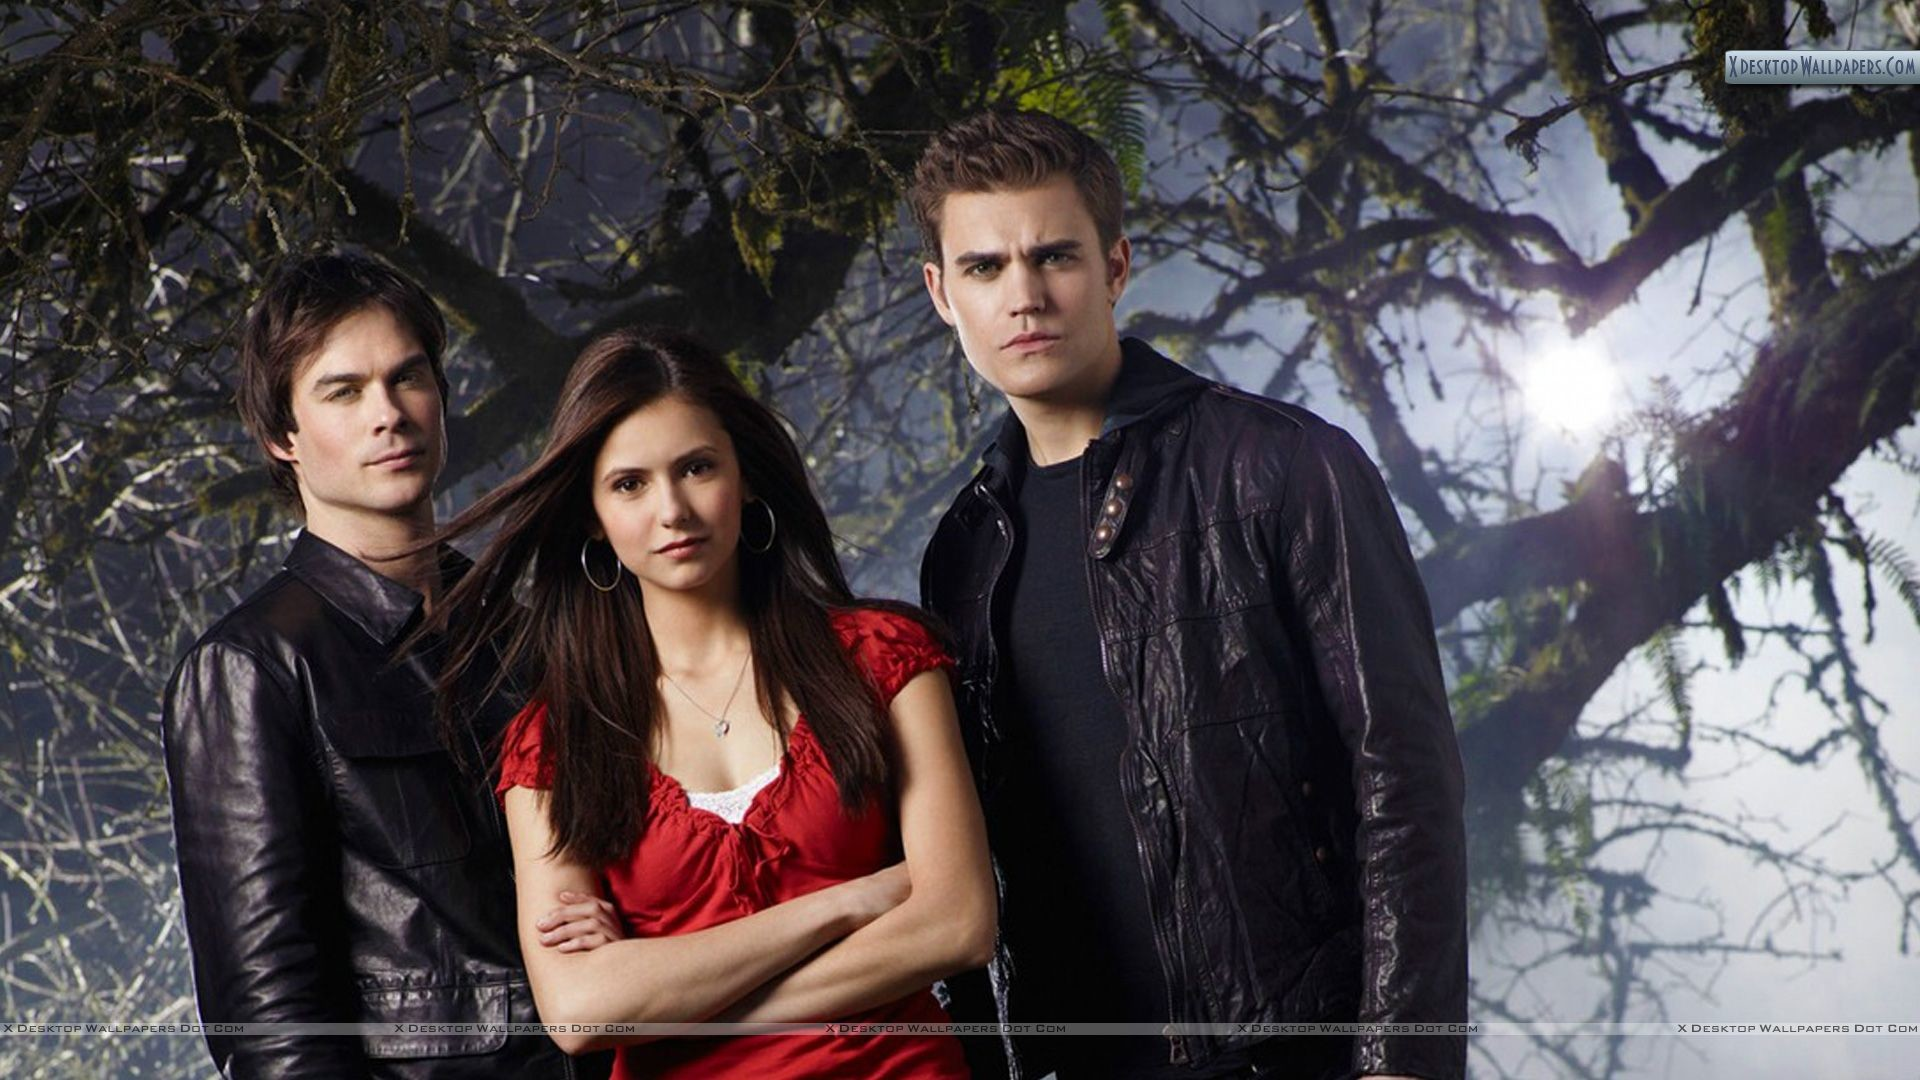 1920x1080 The Vampire Diaries pictures